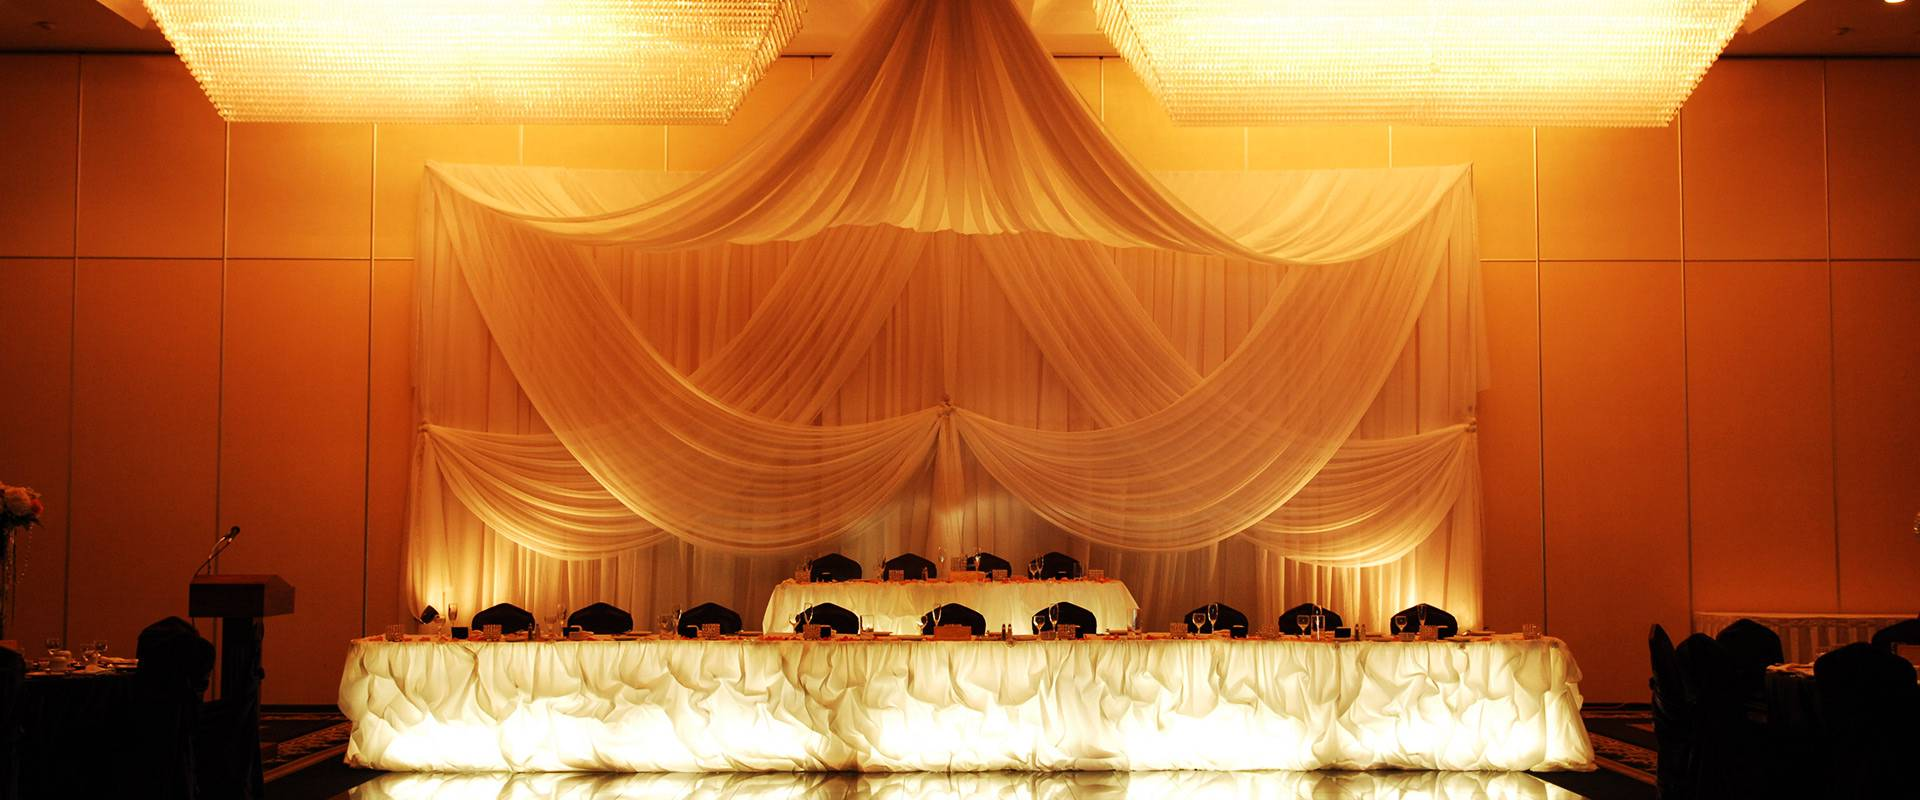 weddings-grand-ballroom